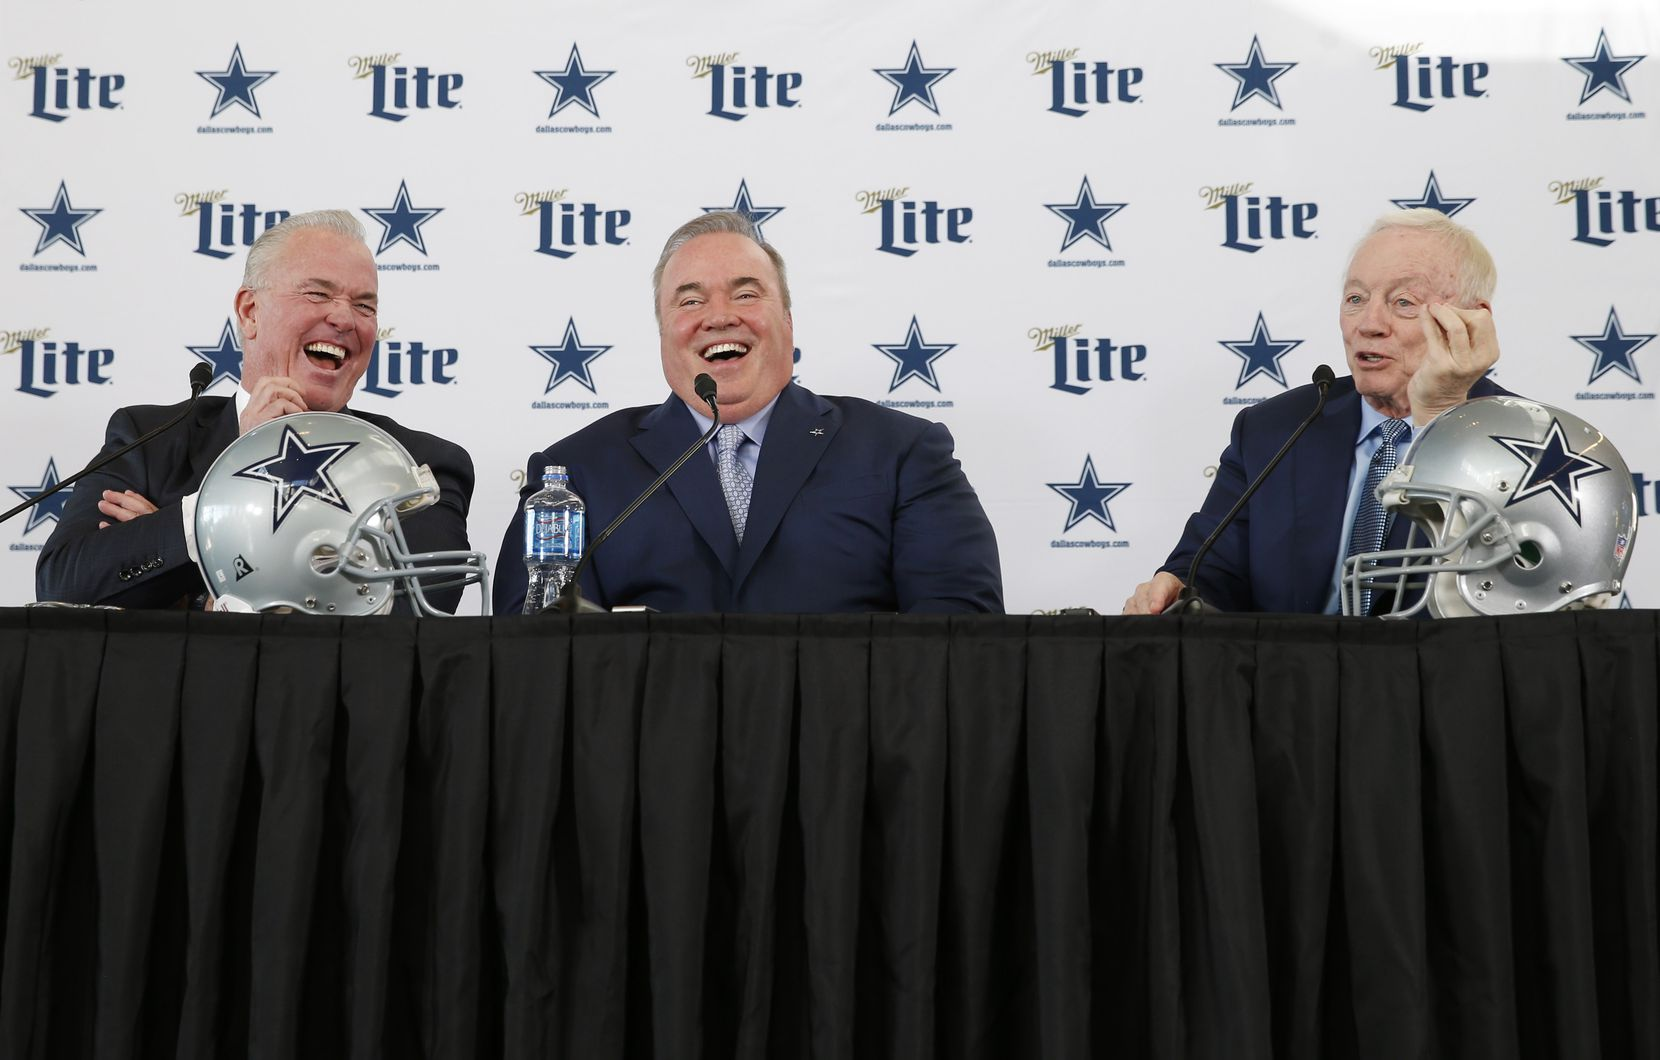 Dallas Cowboys new head coach Mike McCarthy (center) shares a laugh with Dallas Cowboys executive vice president Stephen Jones (left) and Dallas Cowboys owner and general manager Jerry Jones (right) during a press conference at The Star in Frisco, on Wednesday, January 8, 2020.